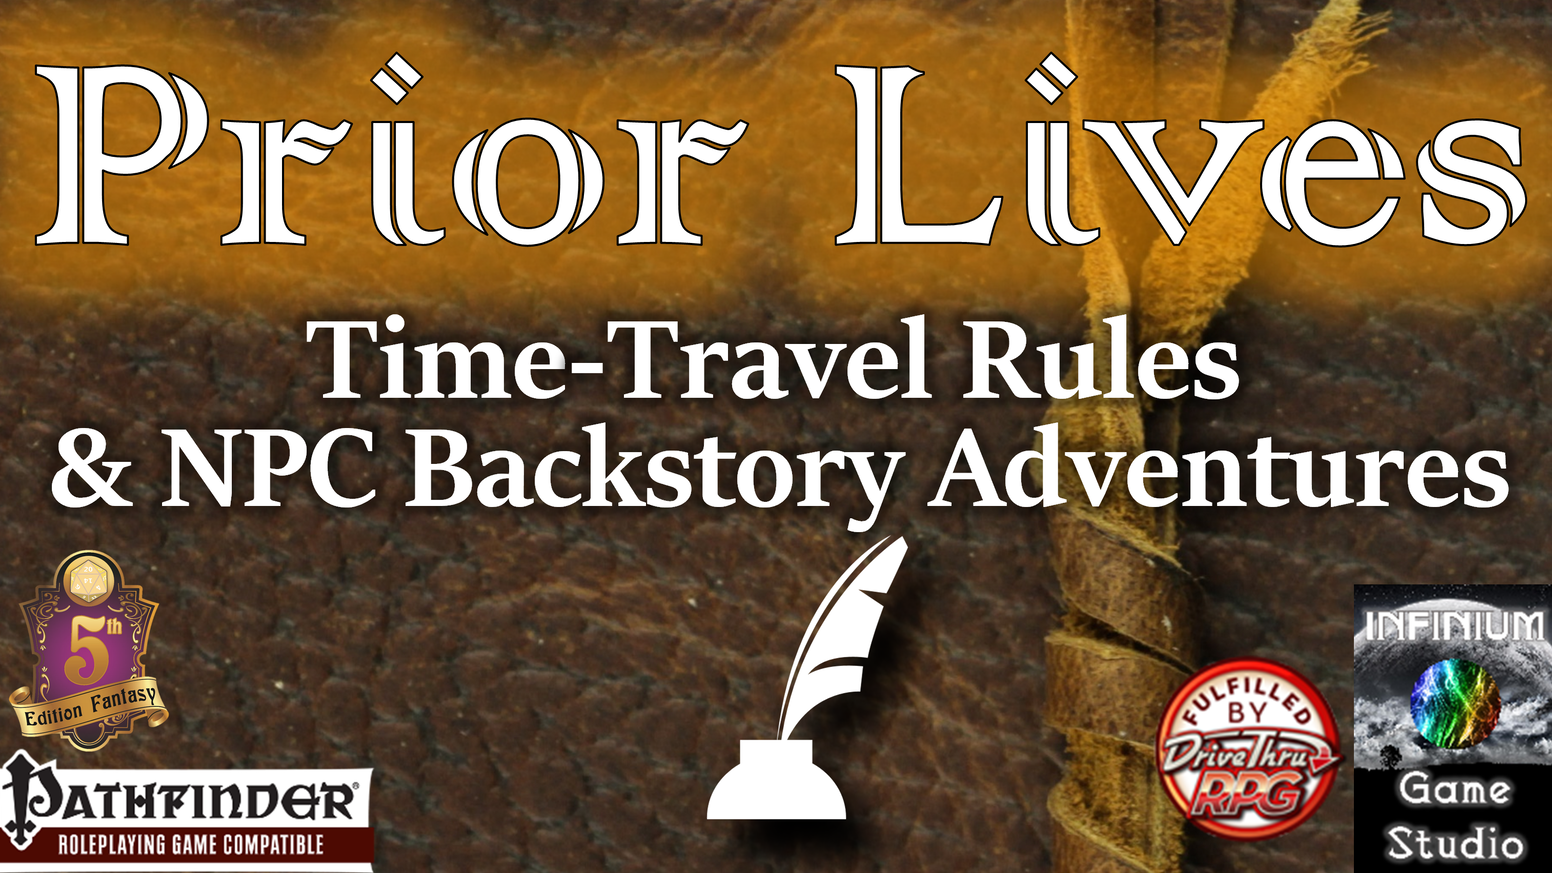 Venture into the past with complete time-manipulation rules, dozens of rich character adventures, time-travel spells, items, & more.